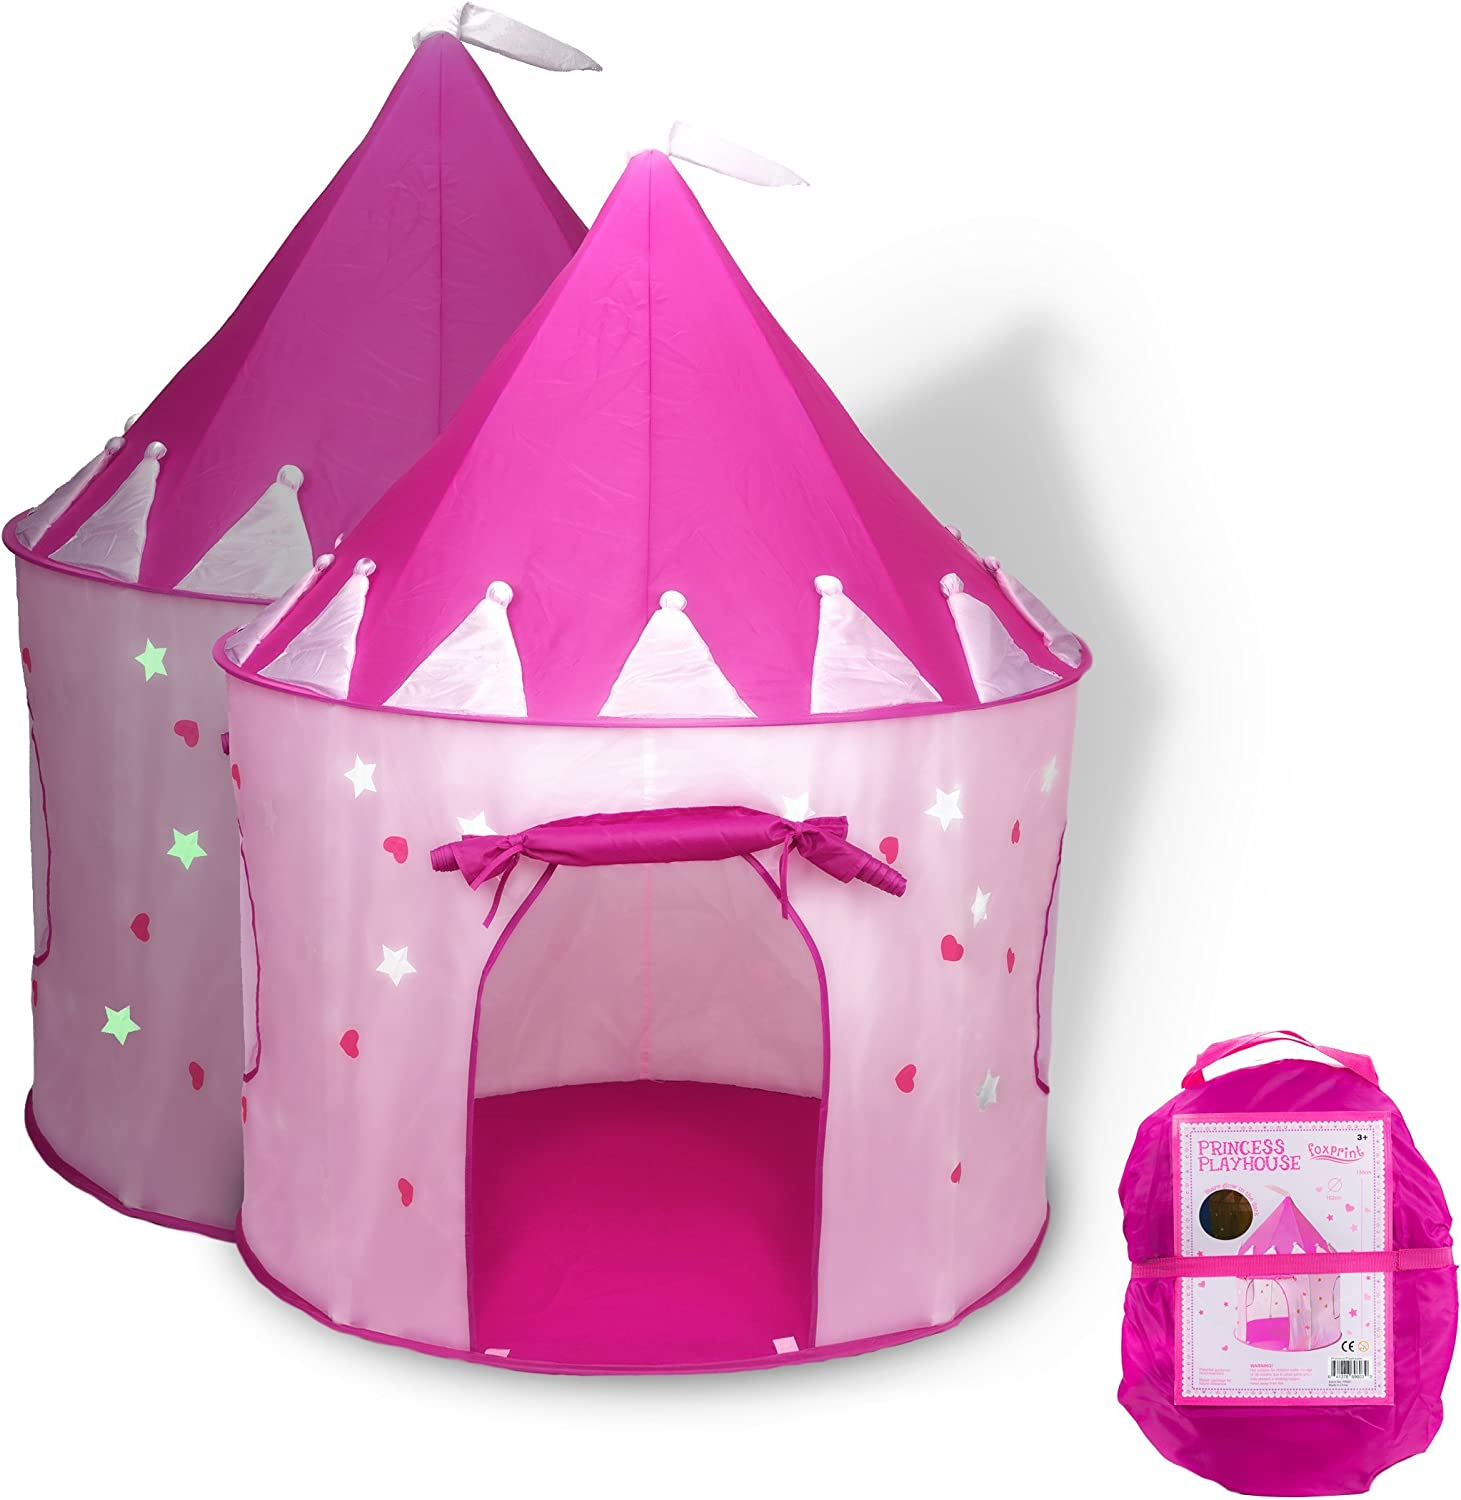 50+ Best Gift Ideas & Toys for 4 Year Old Girls (2020 Updated) 24